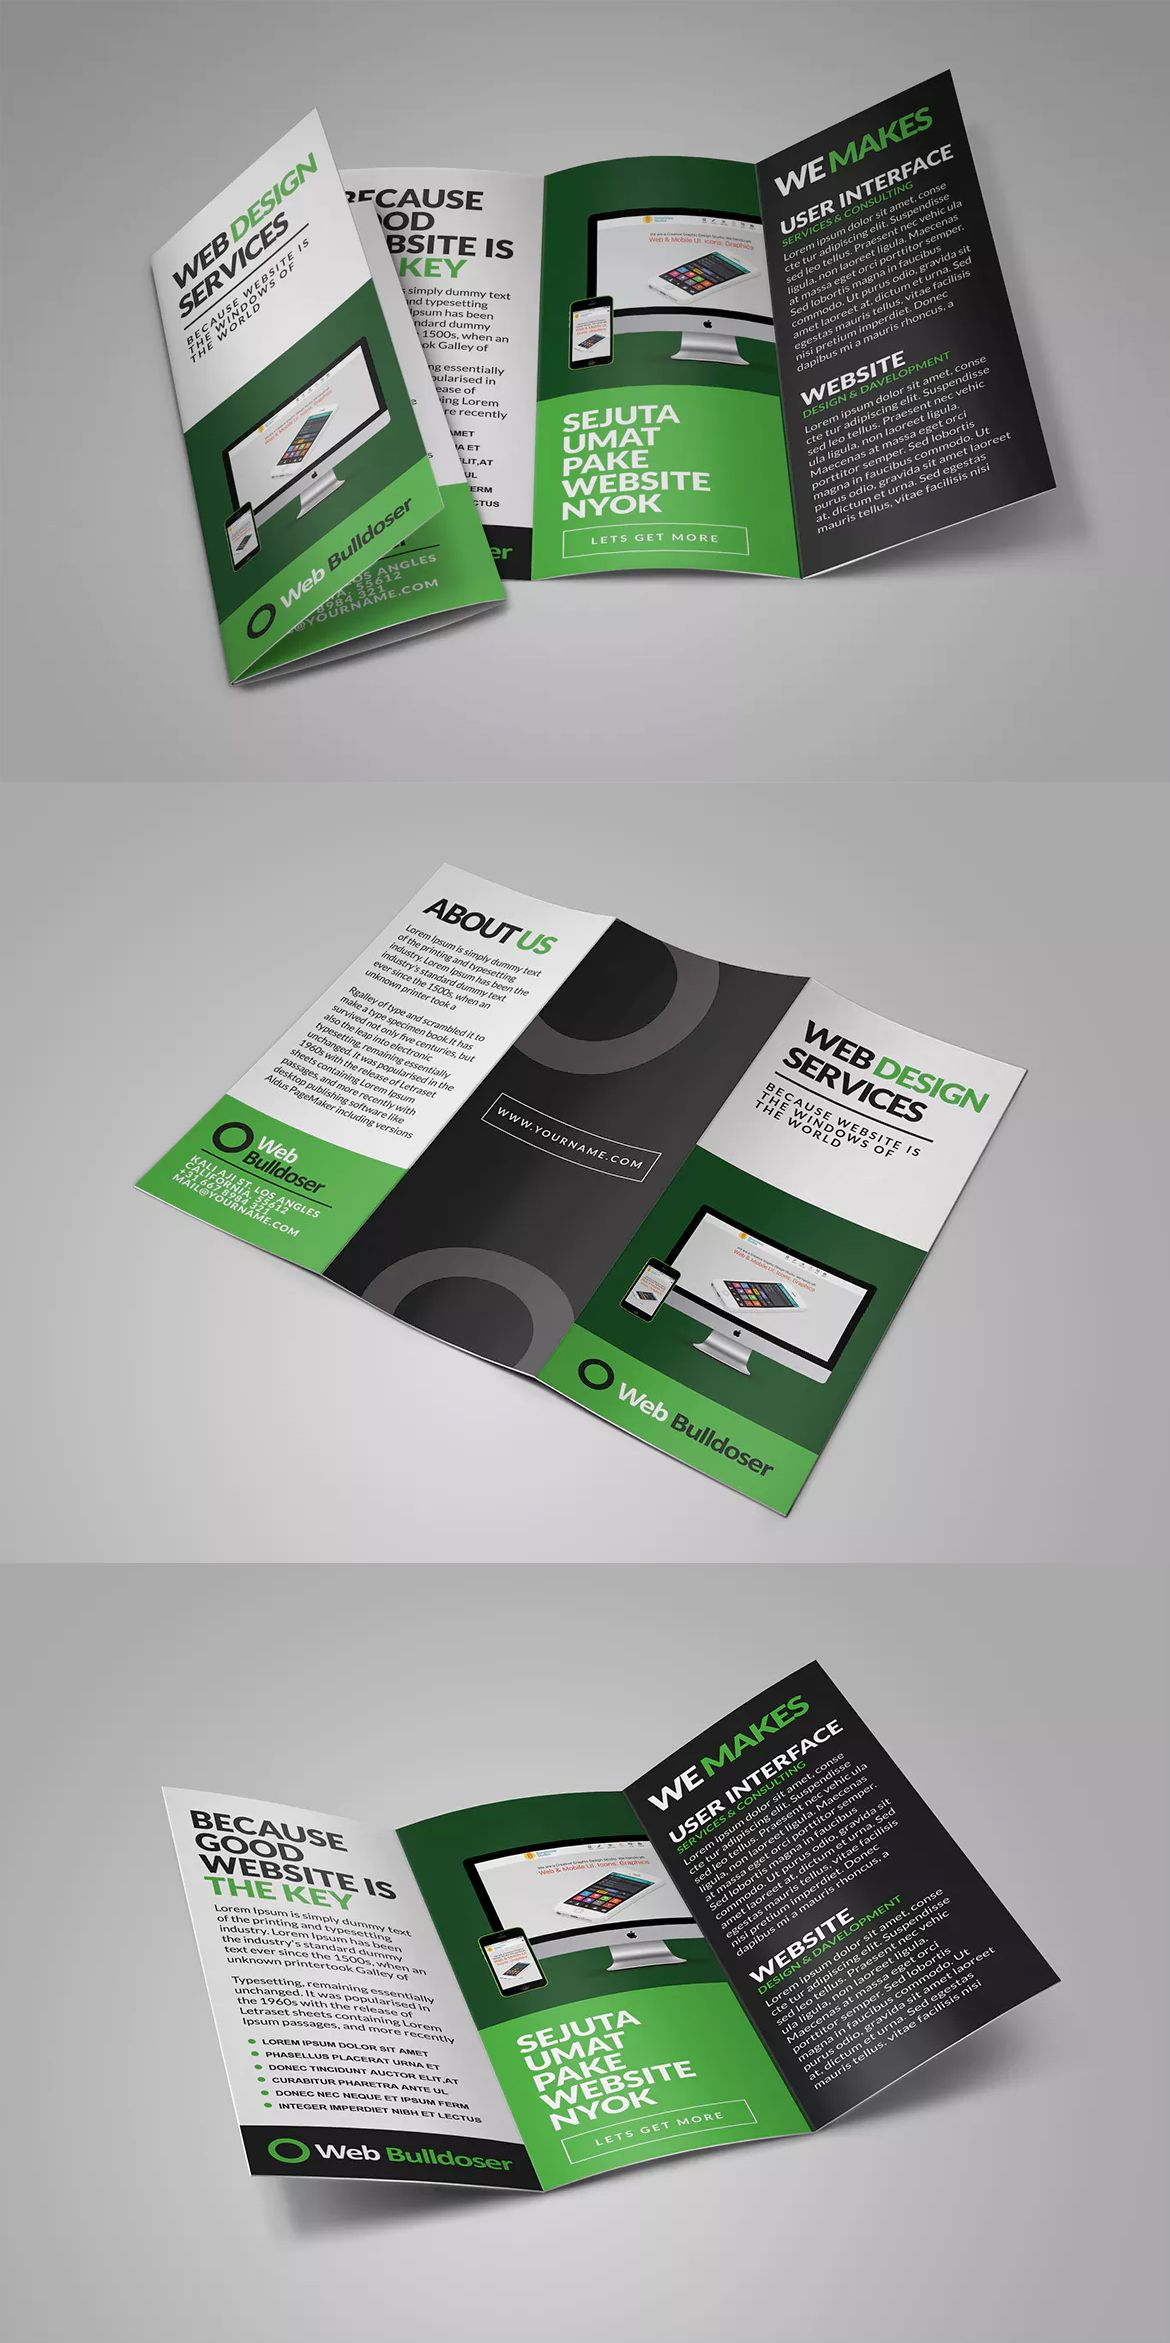 Web Design Trifold Brochure Templates Psd Brochure Templates